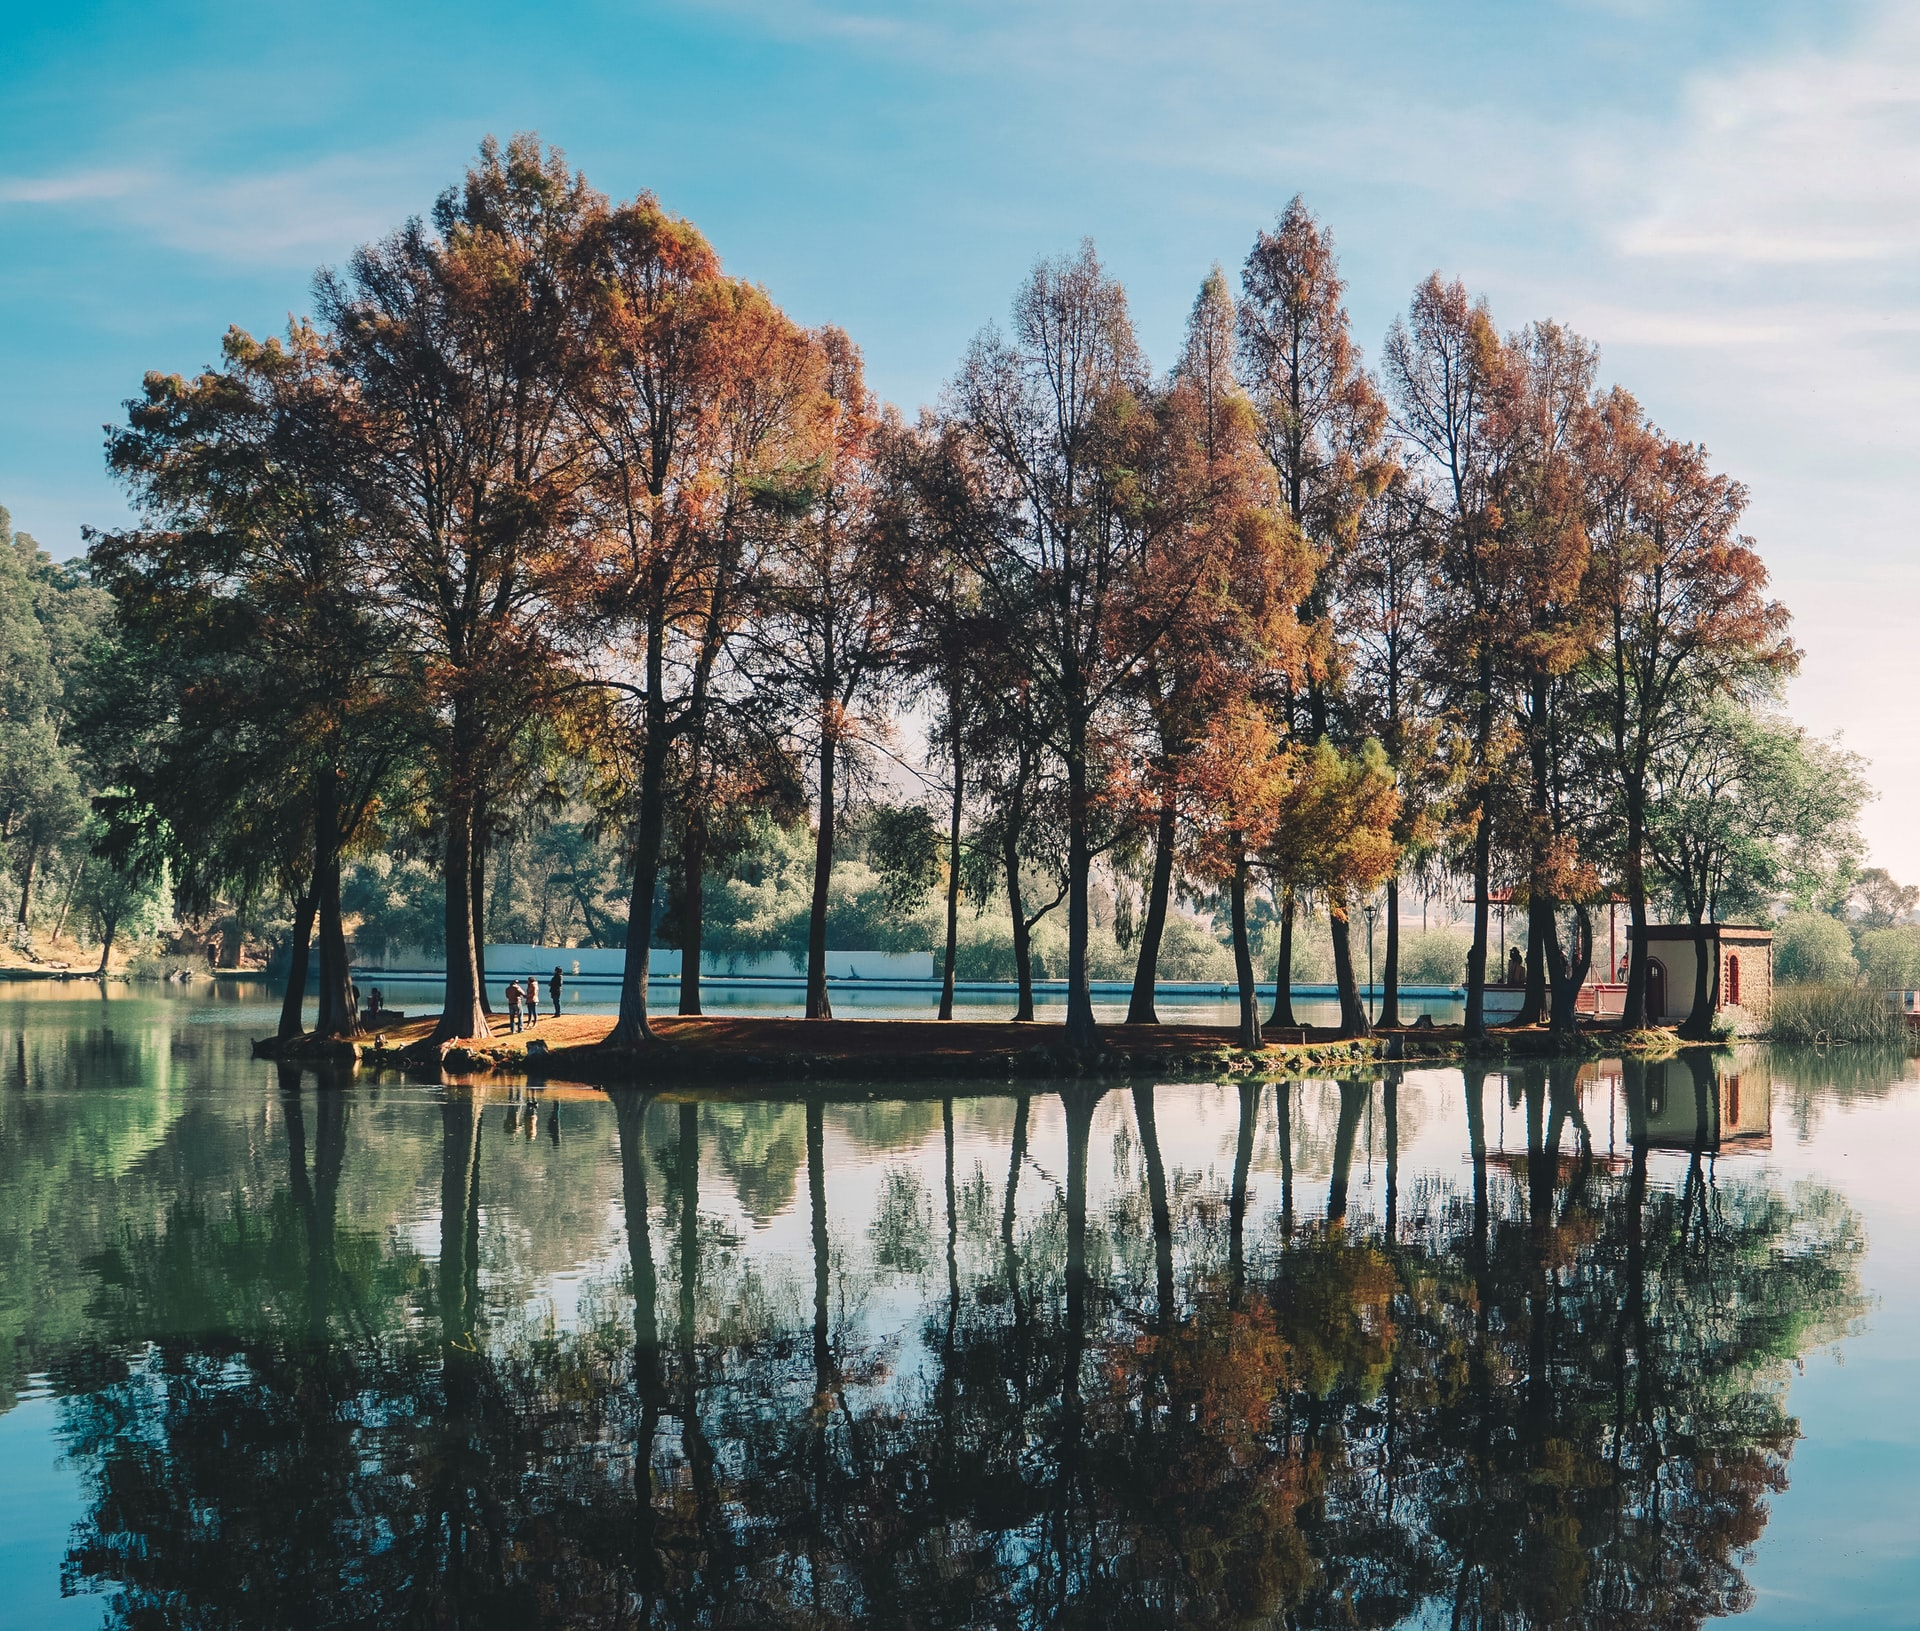 trees on an island with reflection